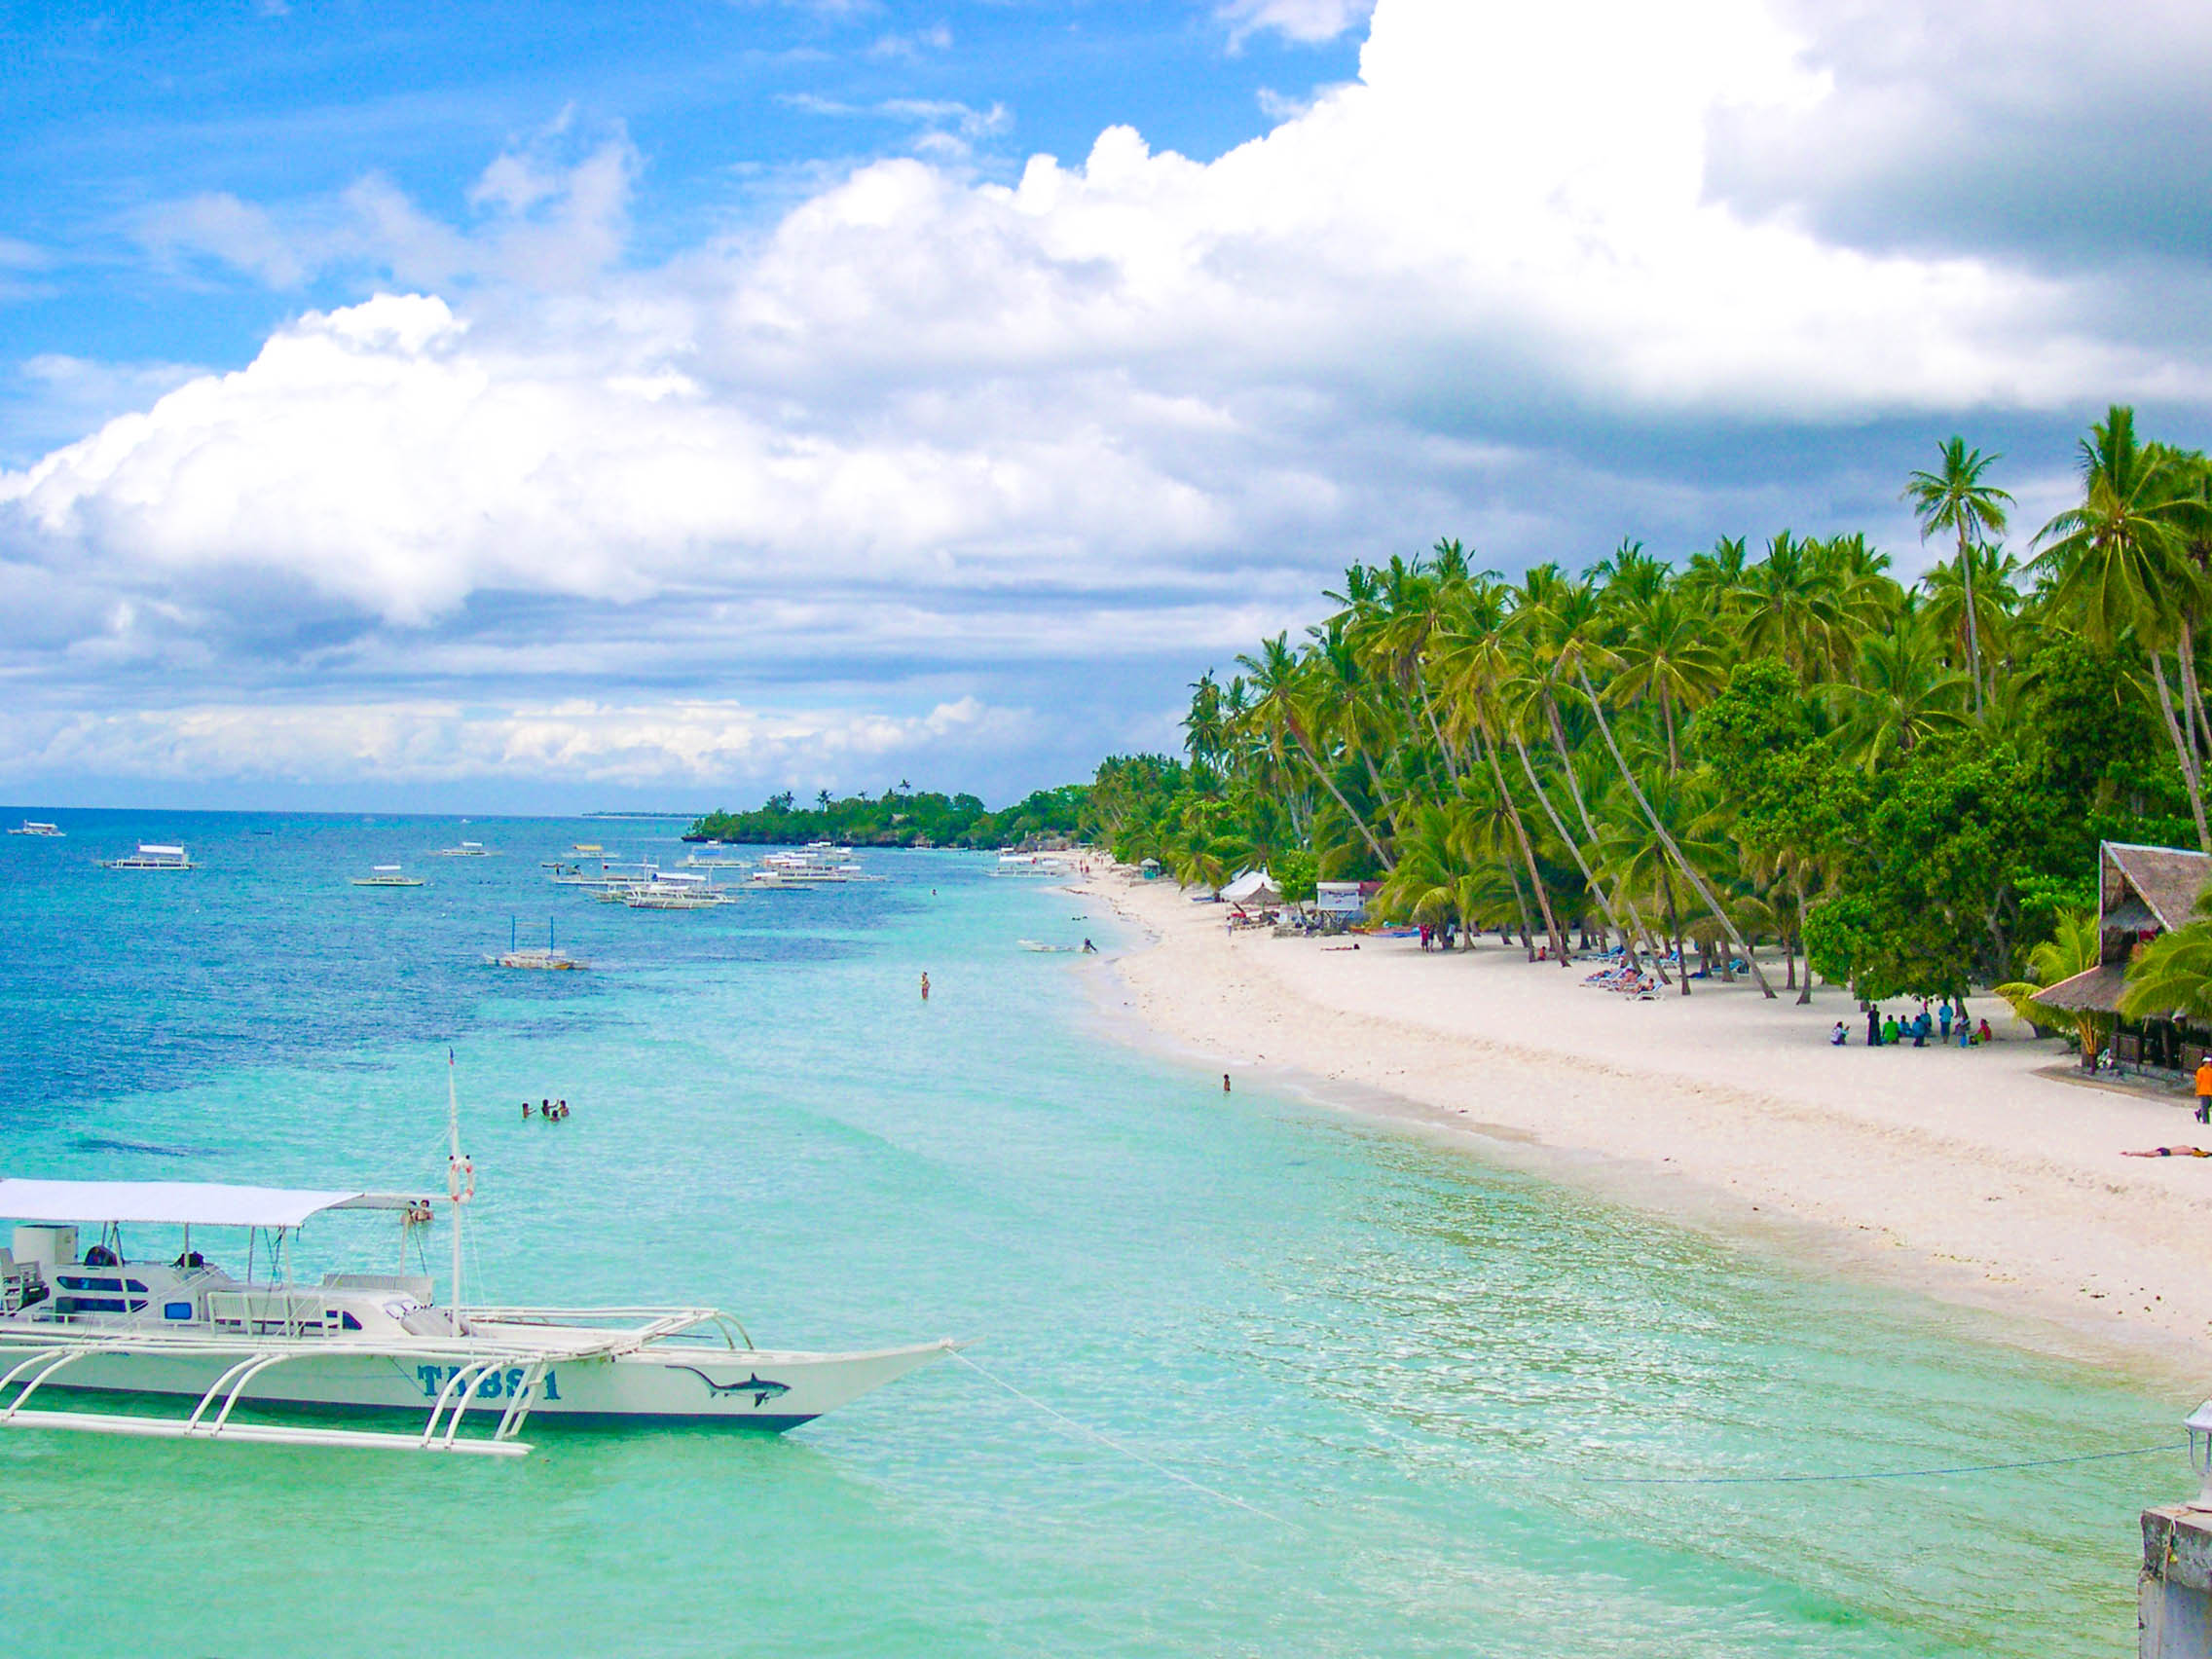 White sand beach with coconut palms fronting clear waters with boats in anchor in Panglao, one of the most amazing places to visit in the Philippines